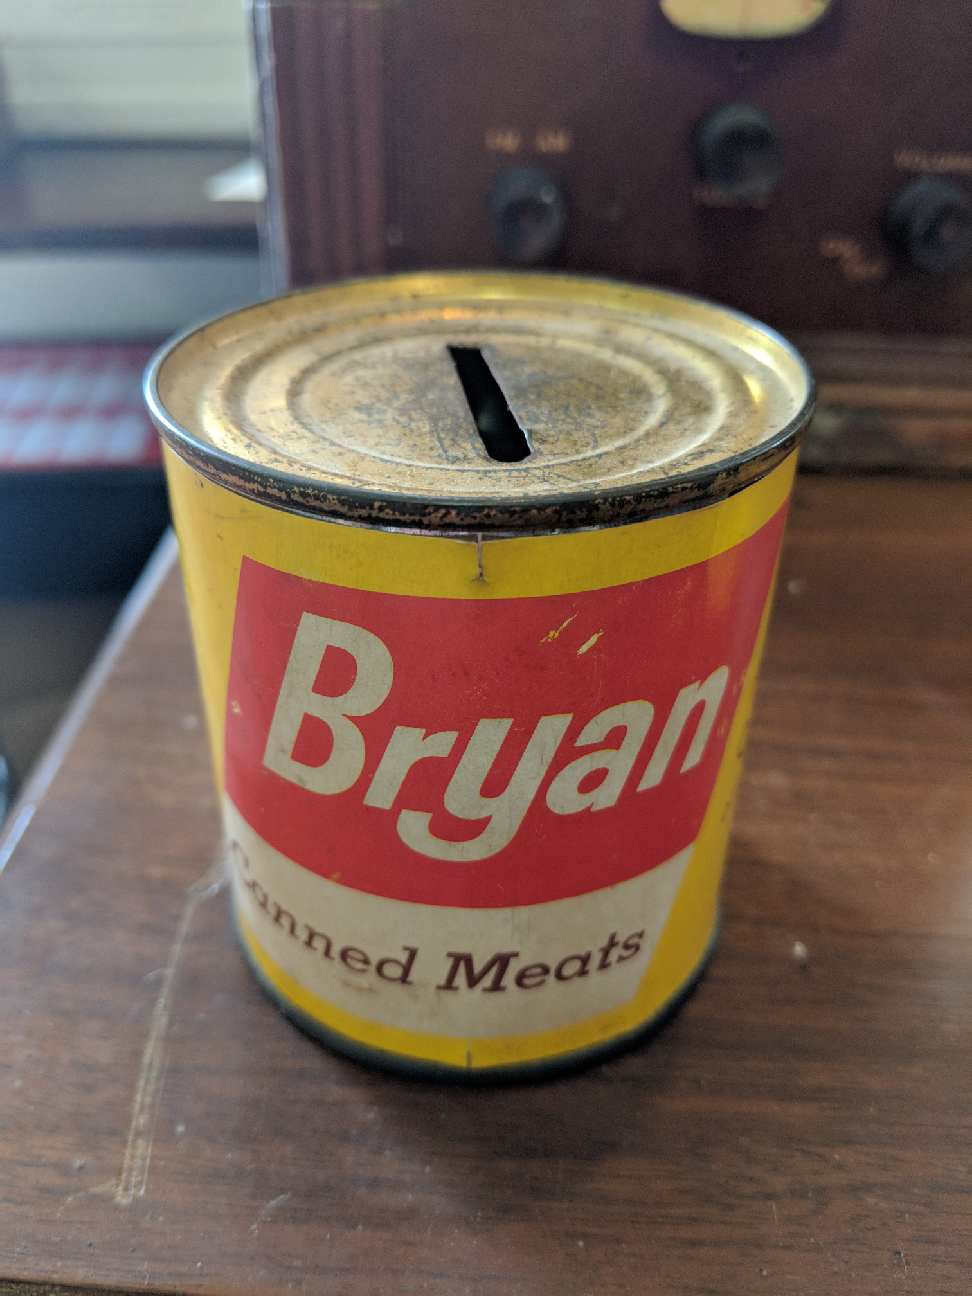 Bank - Bryan Canned Meats Bank from 1930's